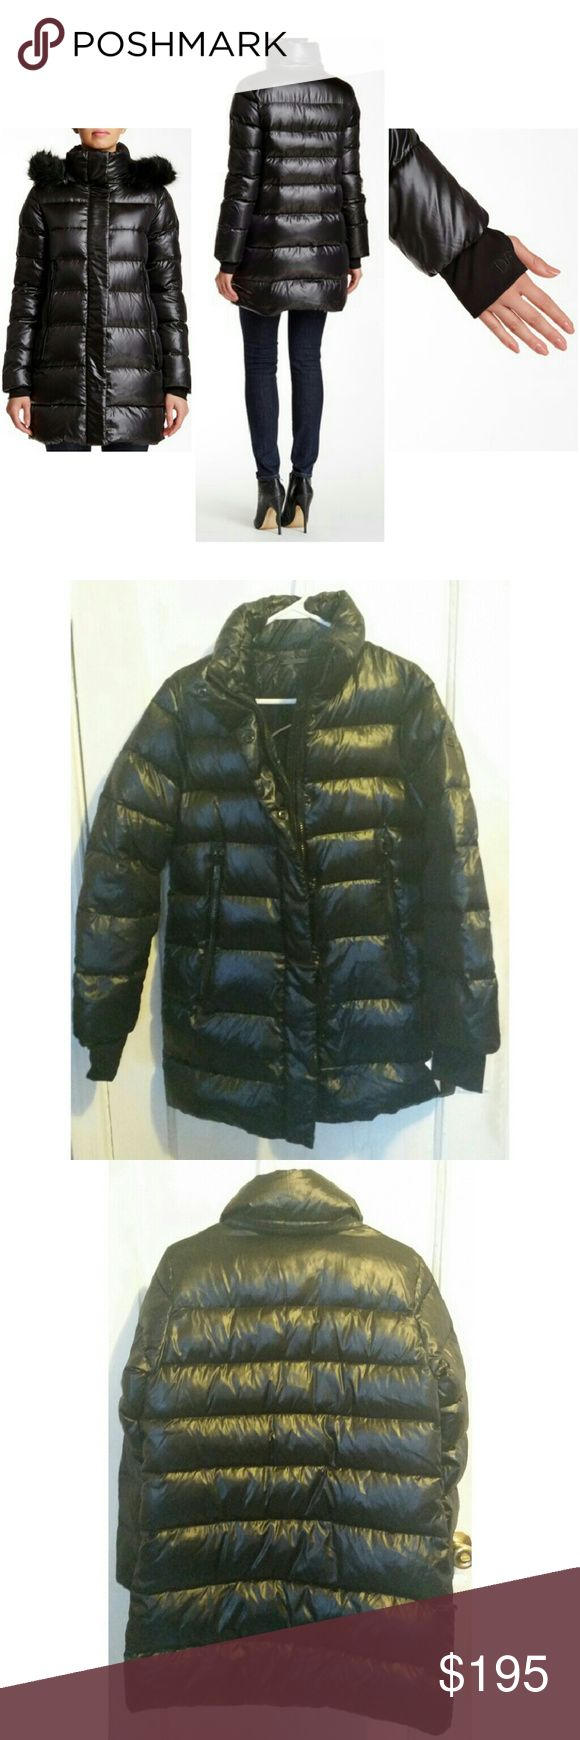 New DVF sz M puffer coat black New DVF women's puffer coat.  Size M.  Retail price $428. Comes without a houd :(  Very lightweight and warm.  Please contact for measurements if needed. Diane von Furstenberg Jackets & Coats Puffers